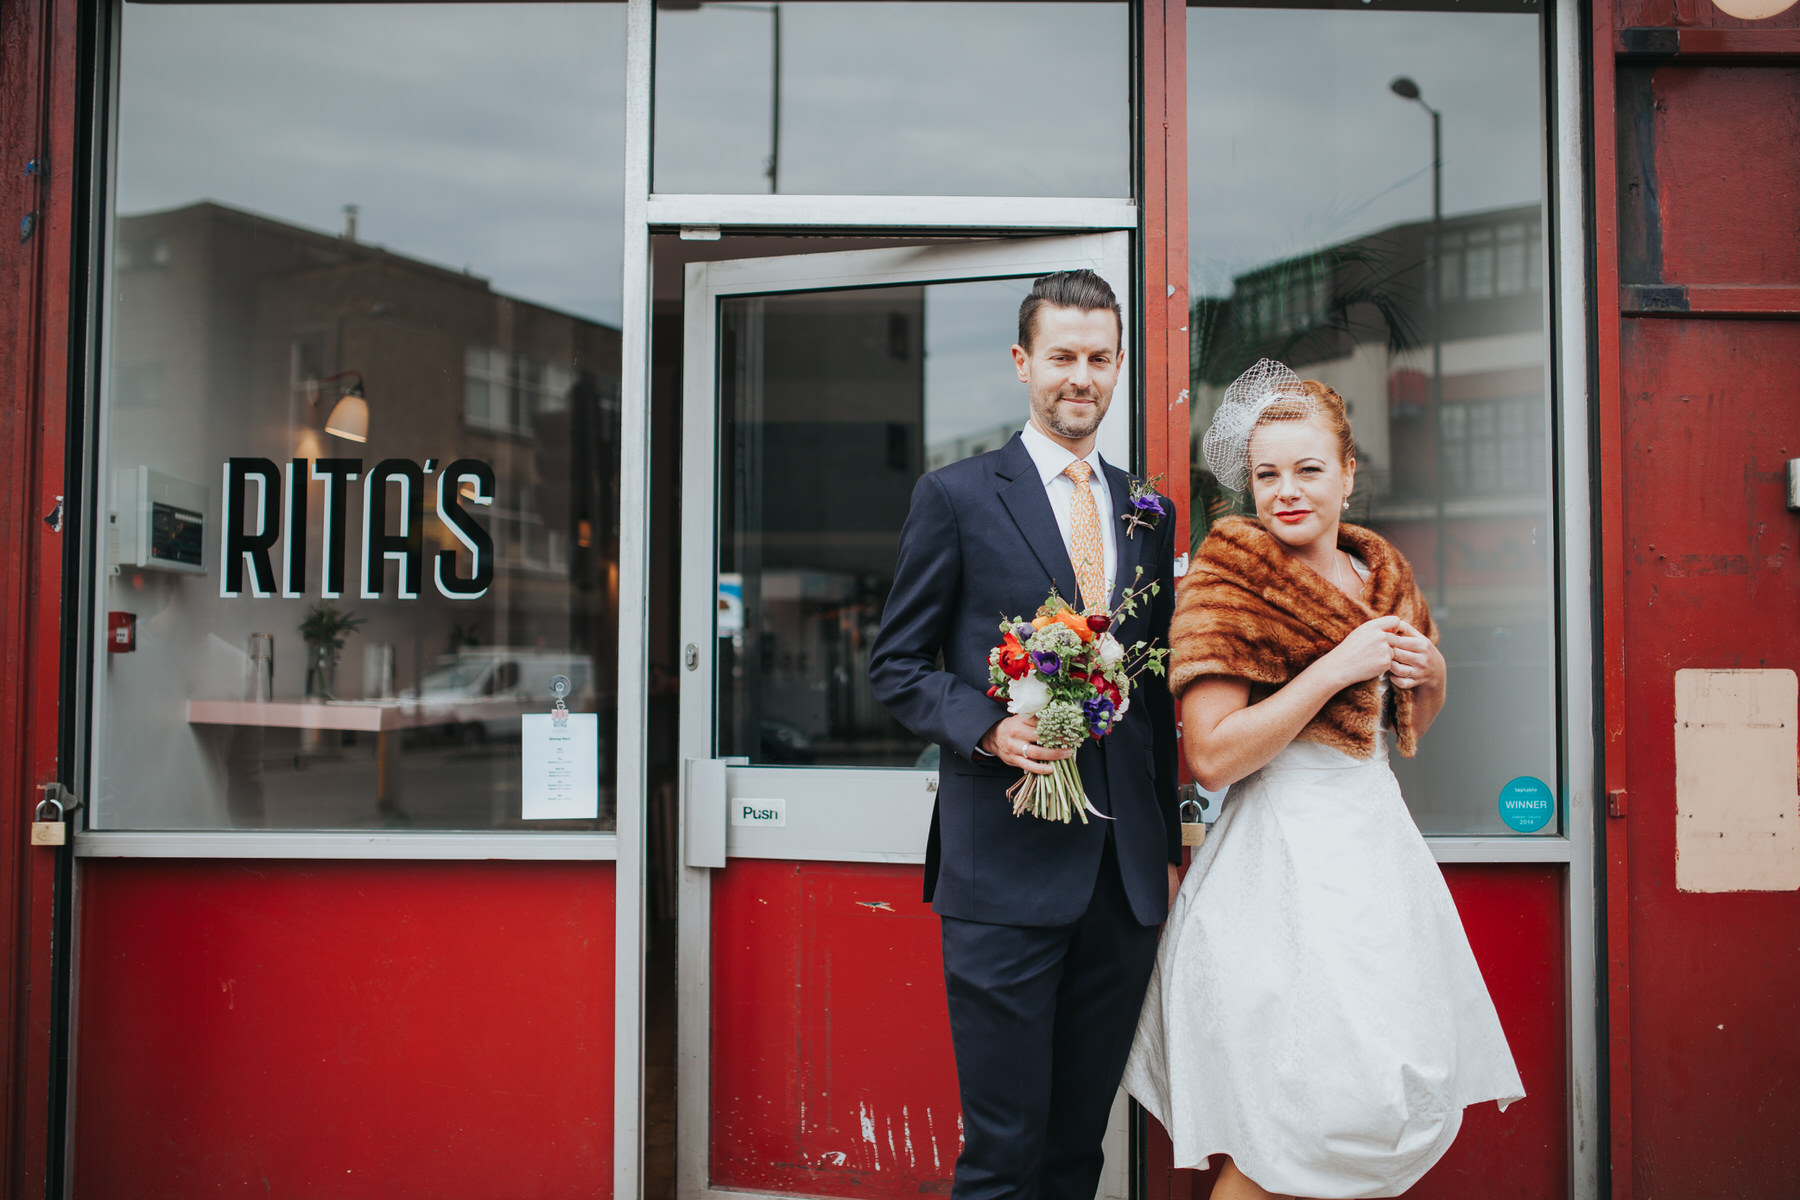 MS-Londesborough-Pub-wedding-Hackney-alternative-photographer-69-groom-outside-Ritas-holding-bouquet-bride-fur-stole.jpg